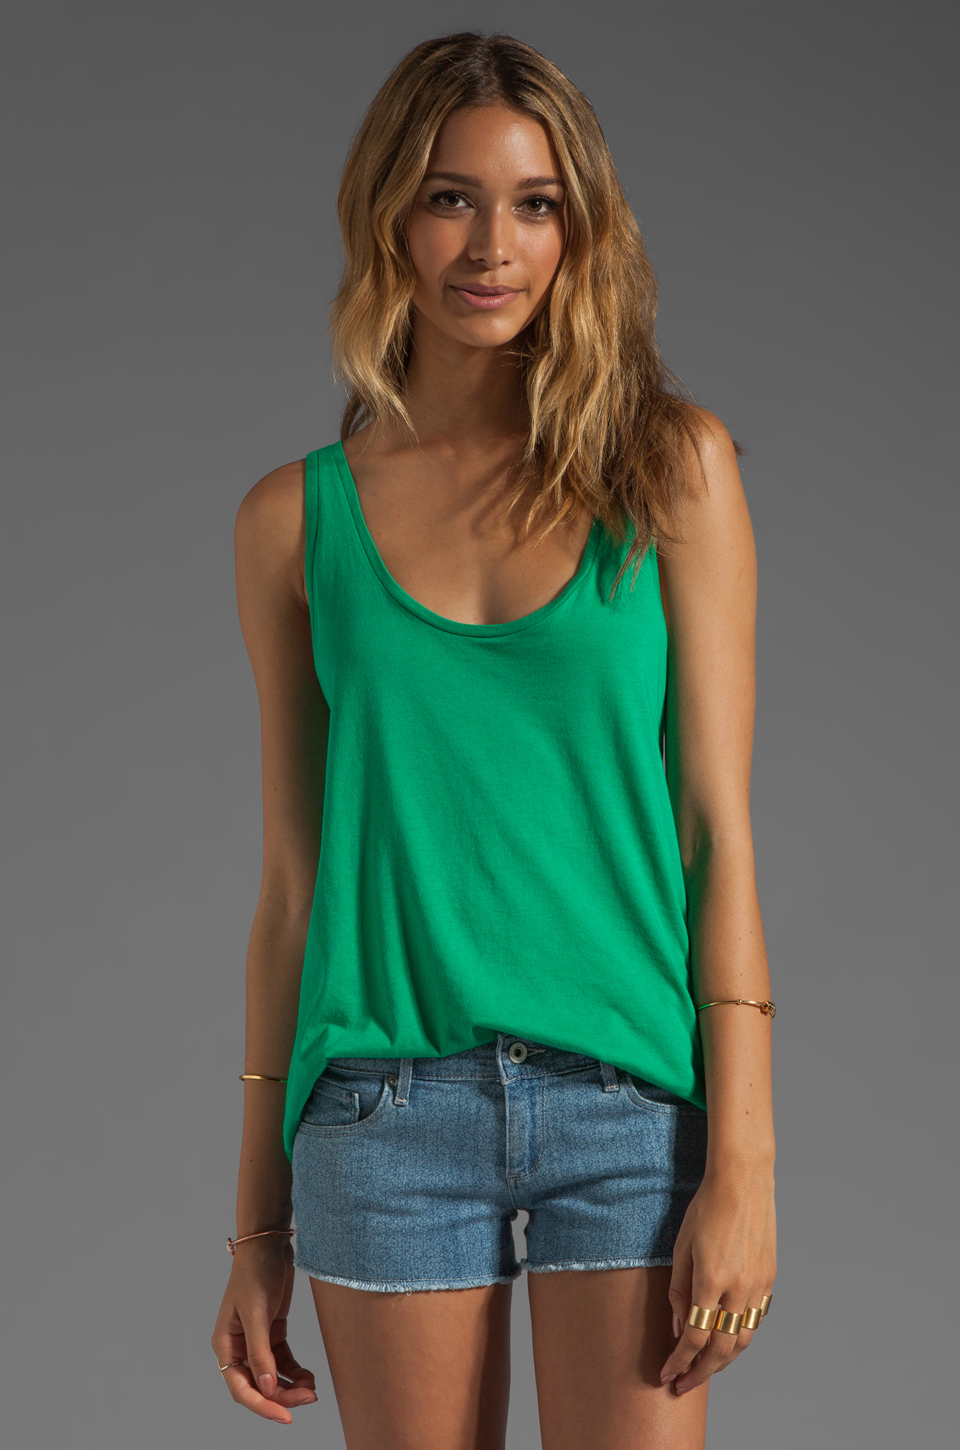 Soft Joie Ira Tank in Sea Green